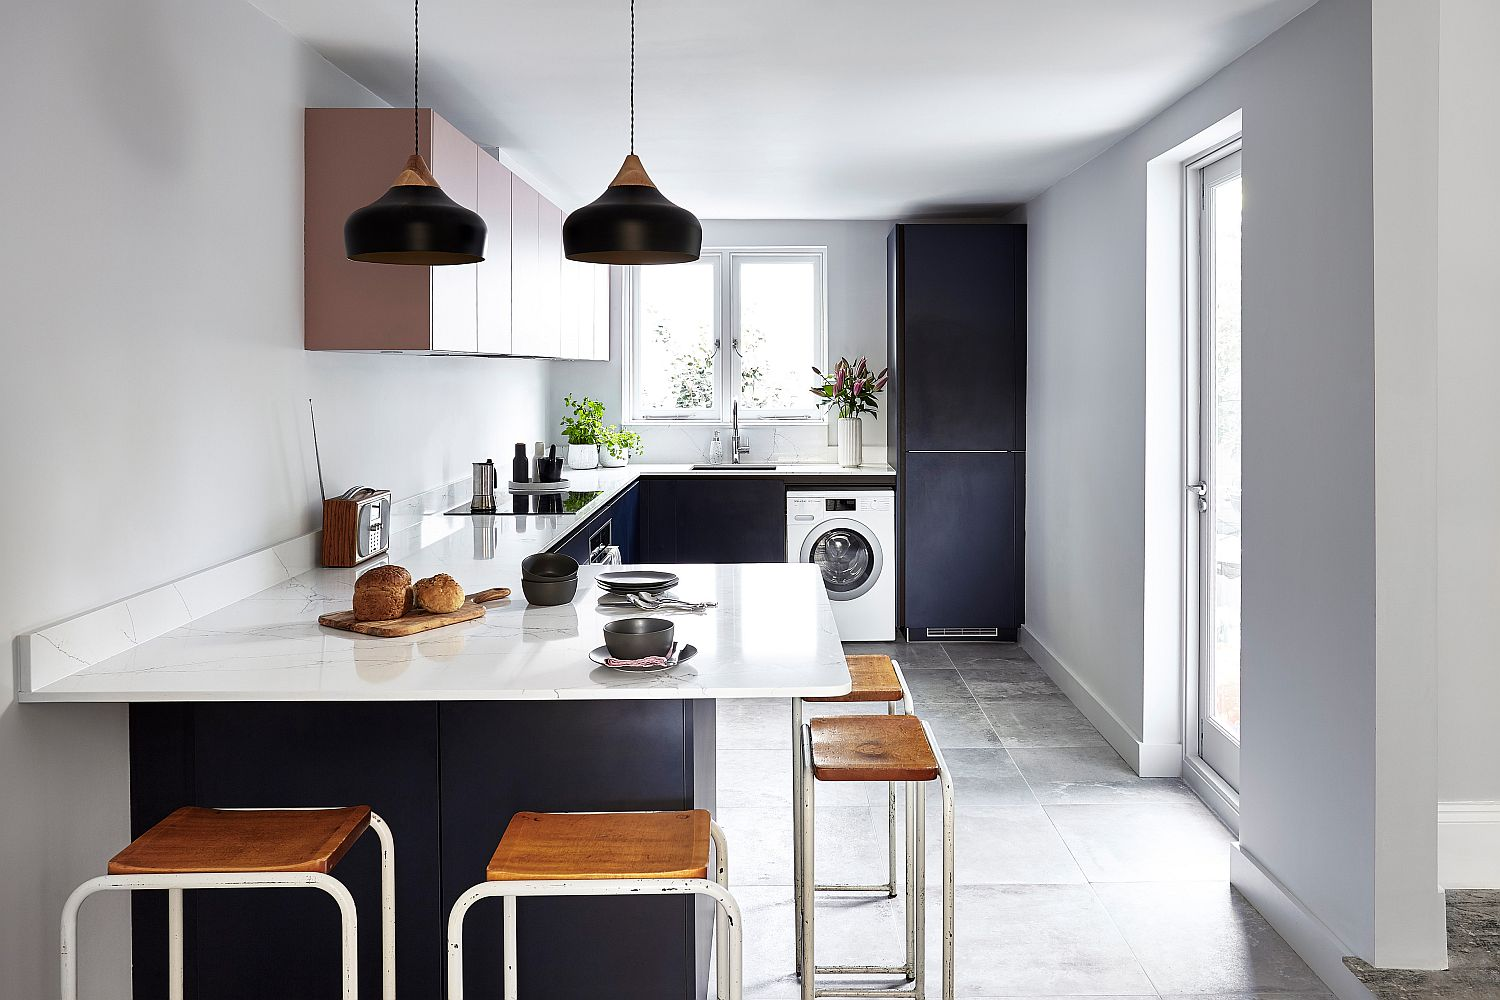 Delightful black pendants stand out visually when placed against the light, neutral backdrop